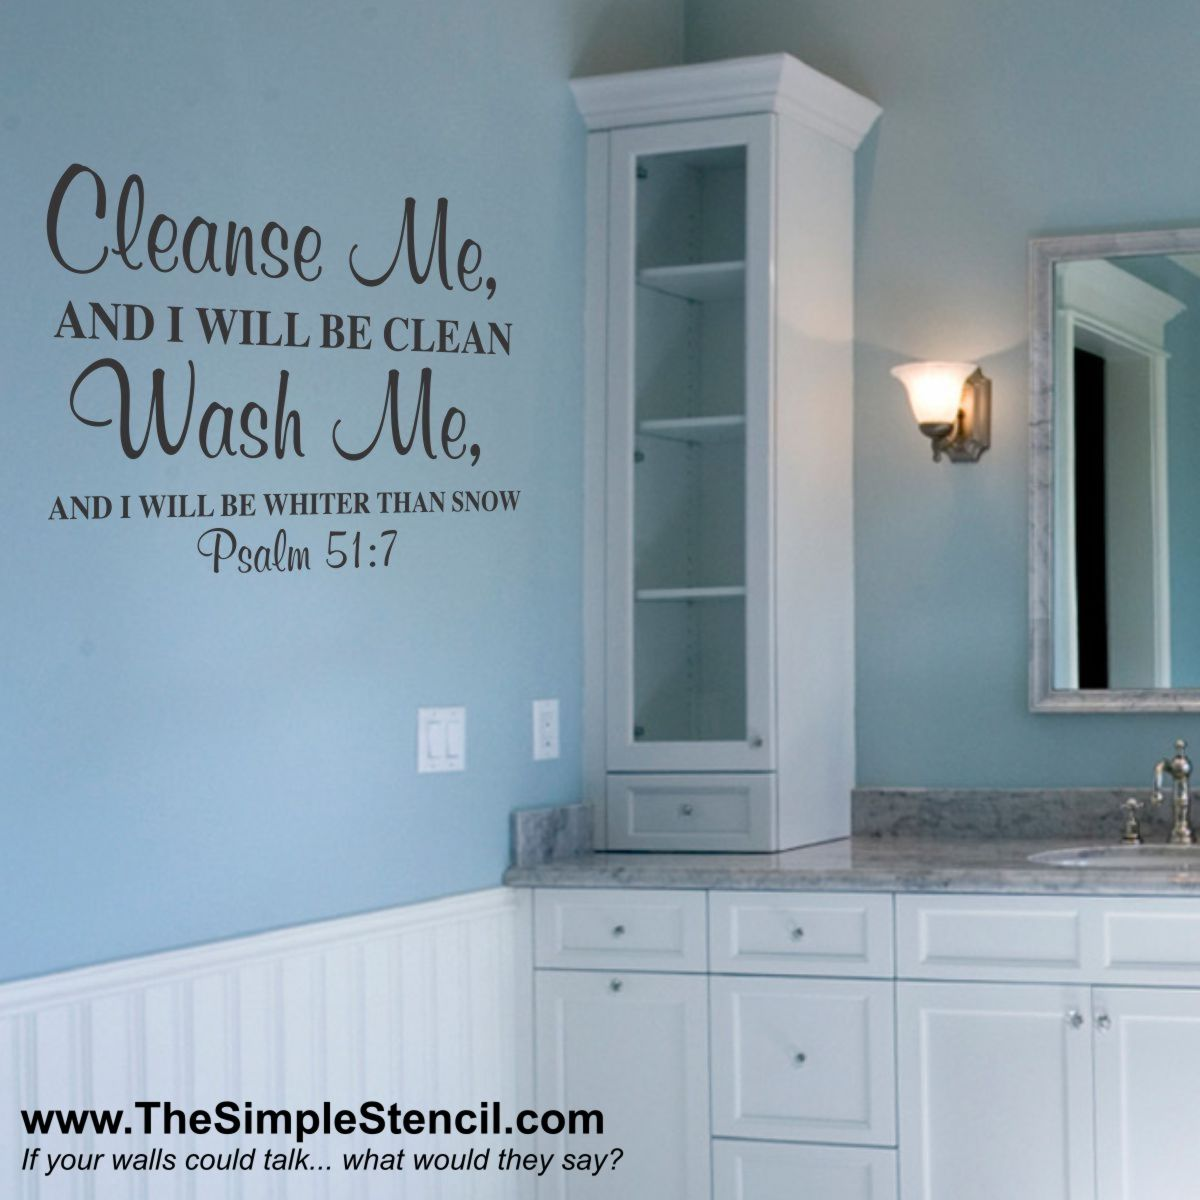 Cleanse Me Psalm 51:7 | Games | Pinterest | Bathroom, Decor and Home ...